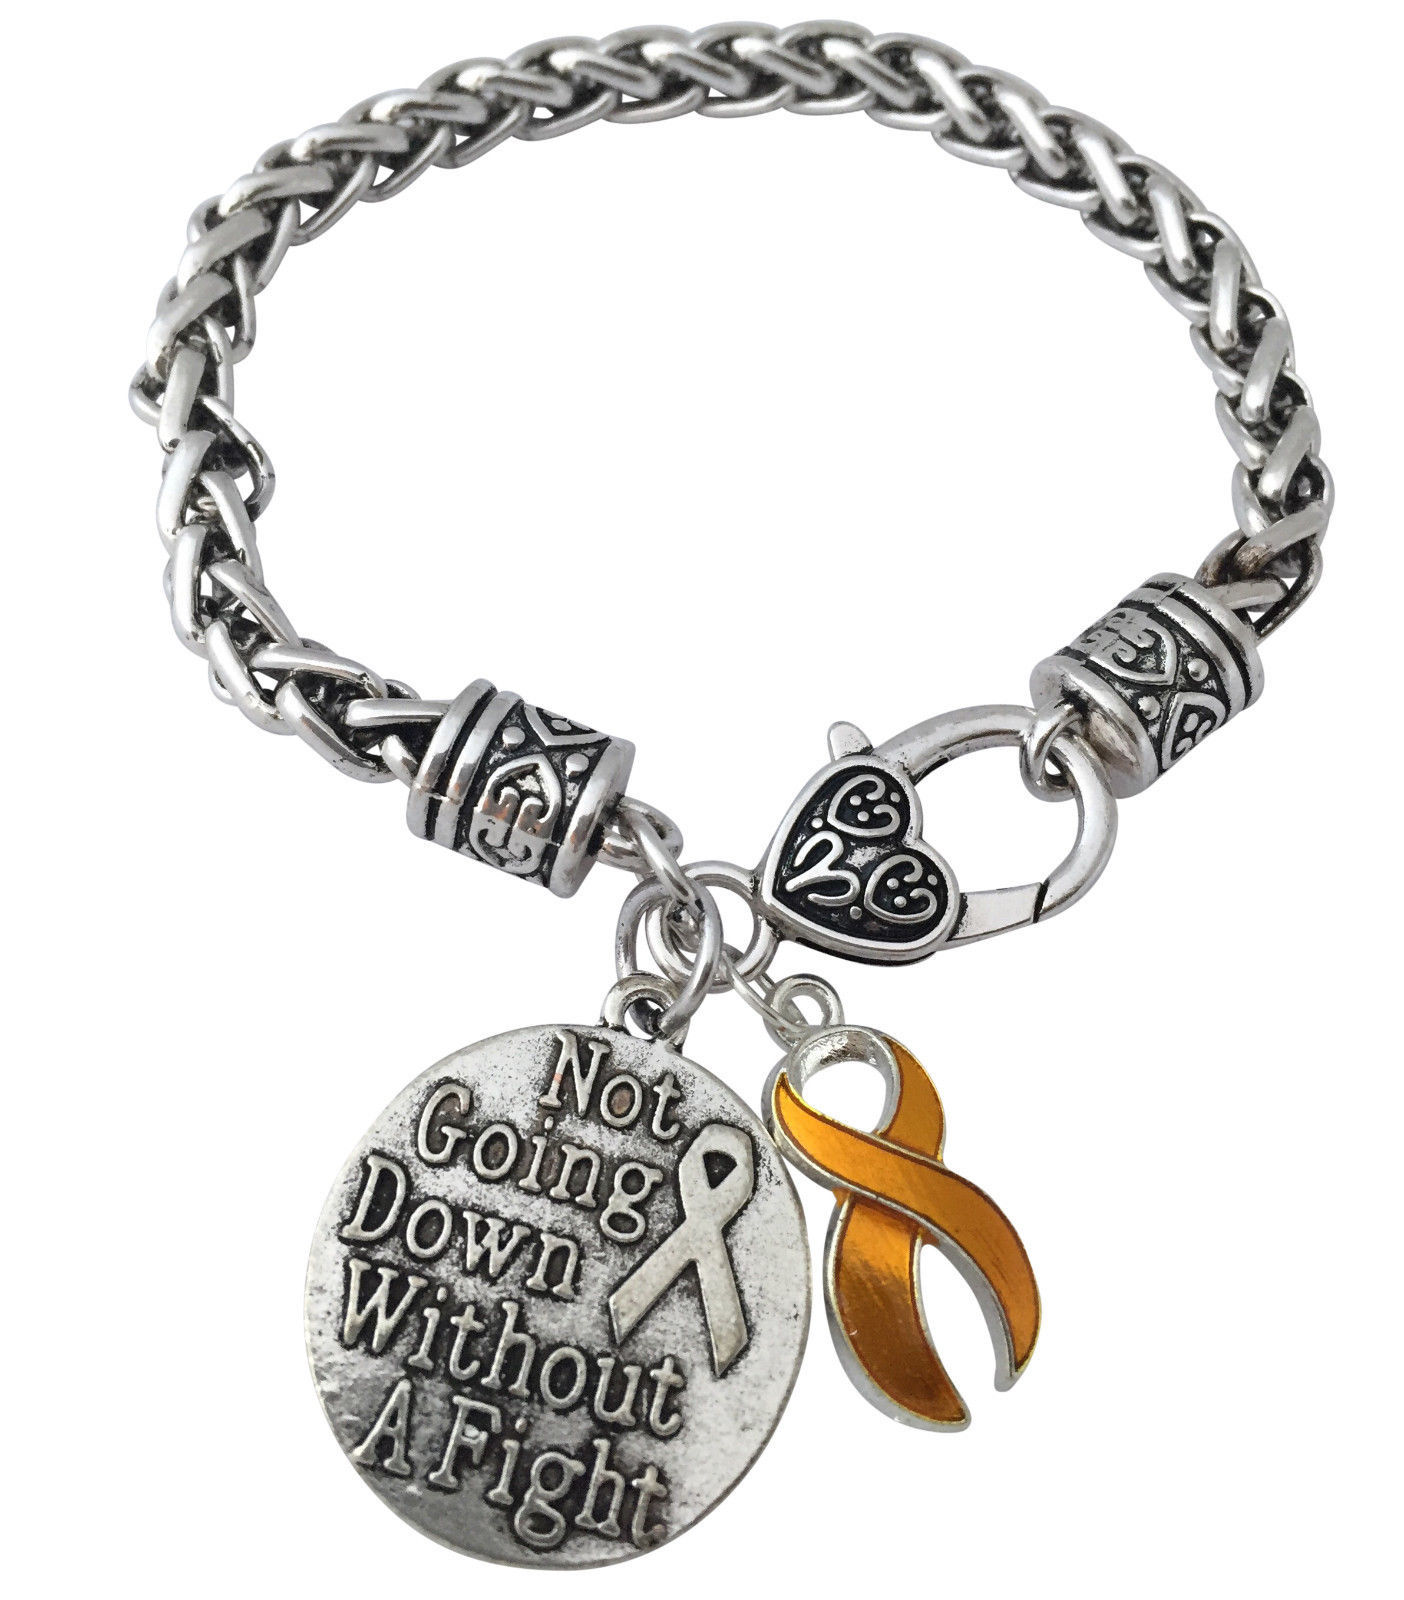 Yellow Cancer Ribbon Not Going Down Without A Fight Silver Charm Bracelet